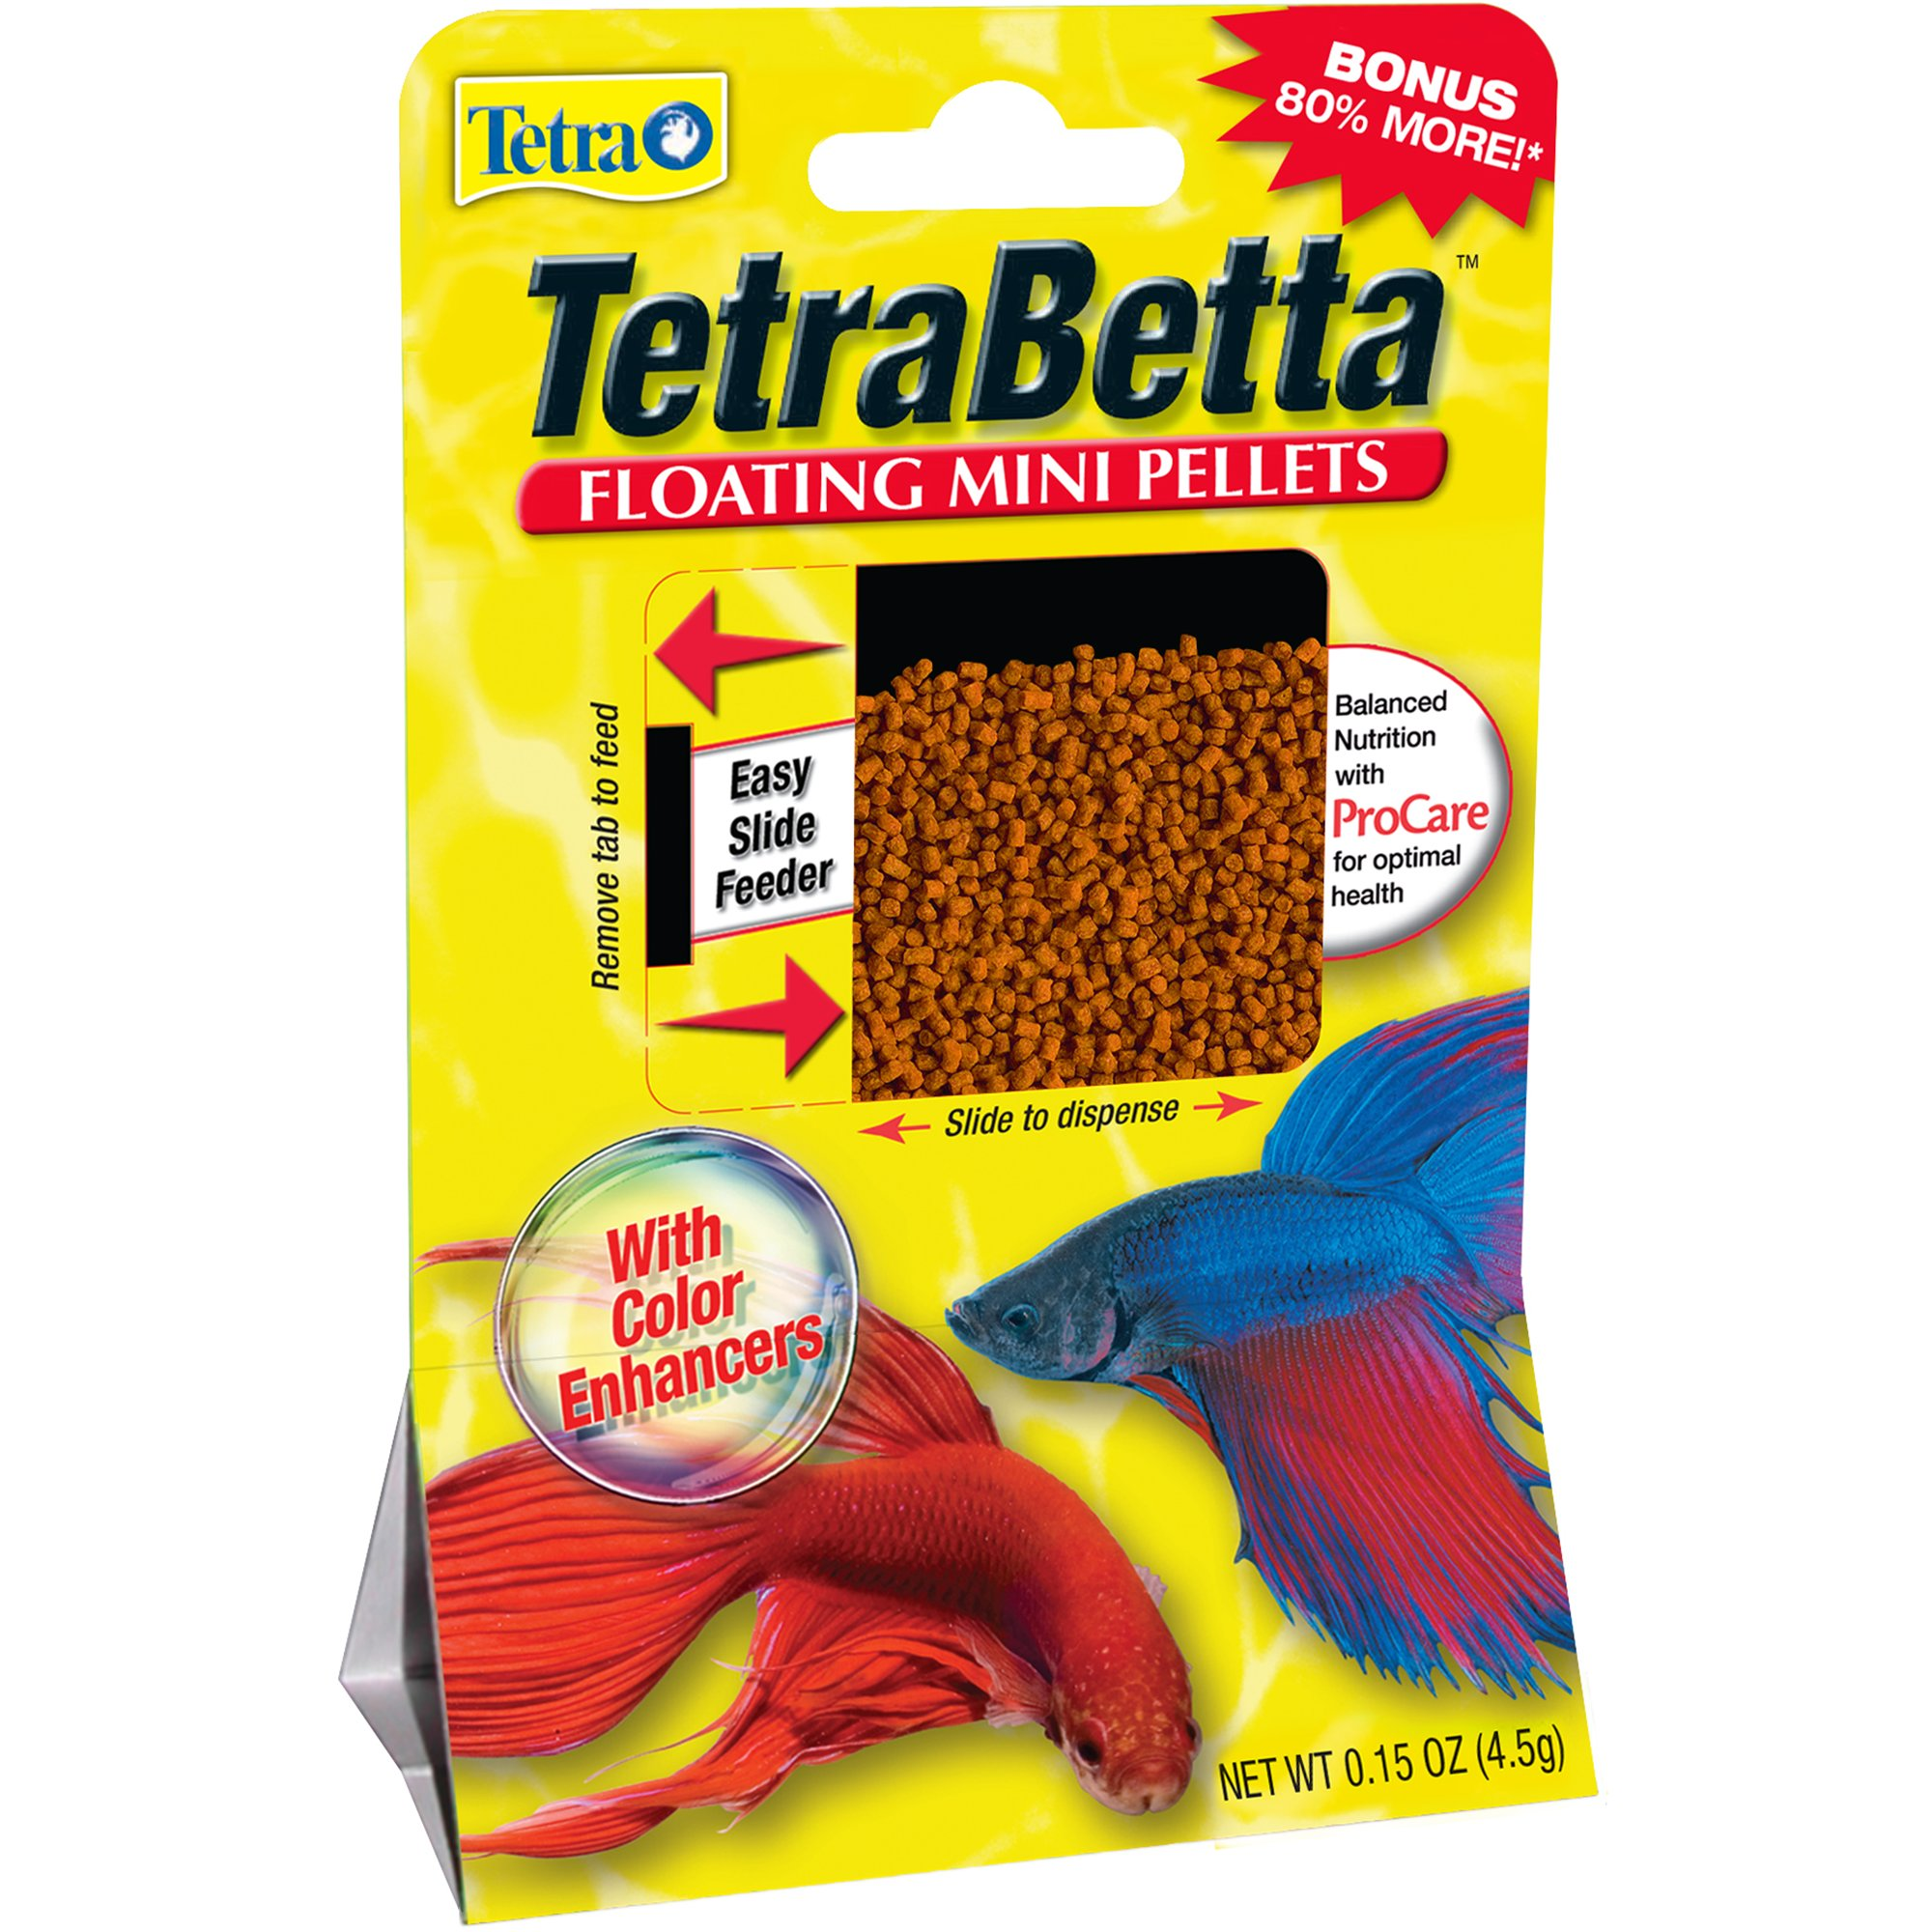 1017096 TETRA BETTA MINI PELLETS x 4.5grs